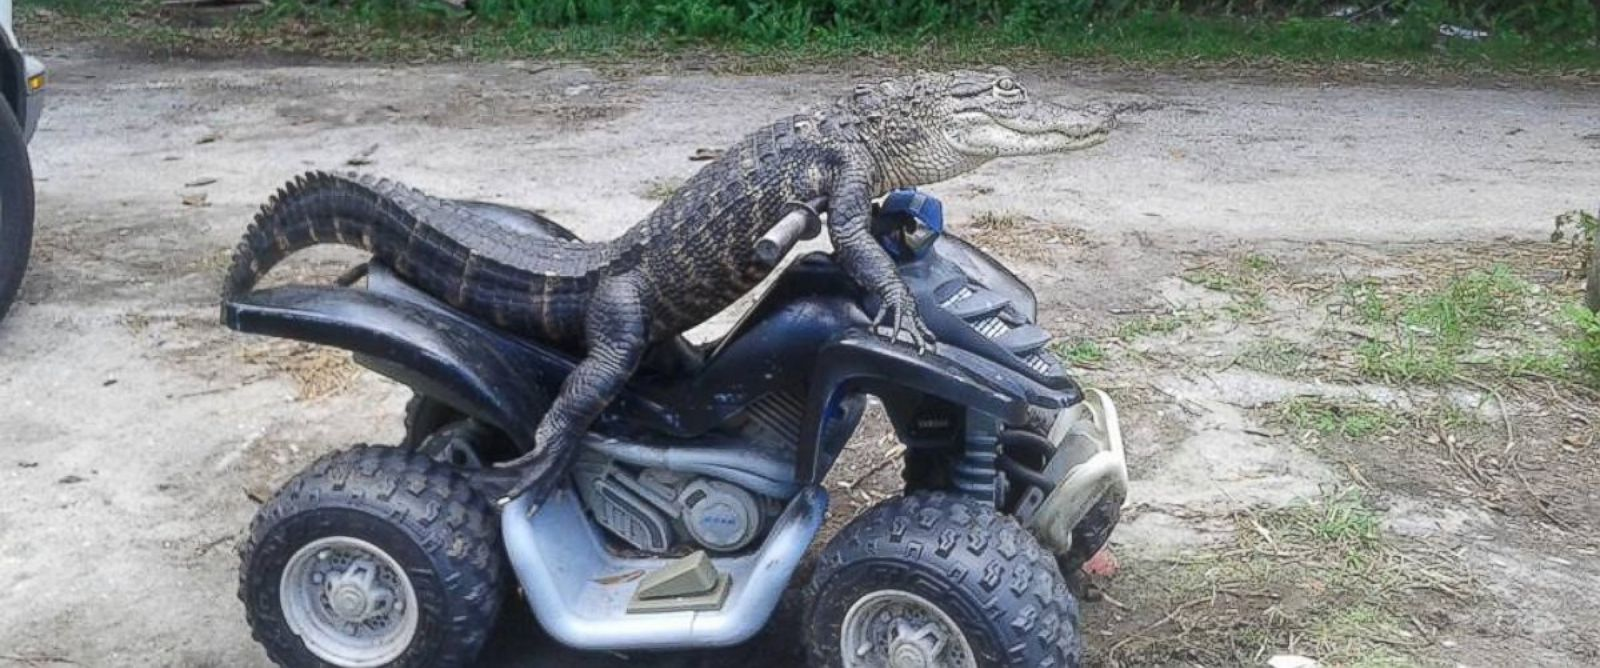 florida woman fights to keep her pet alligator who wears clothes